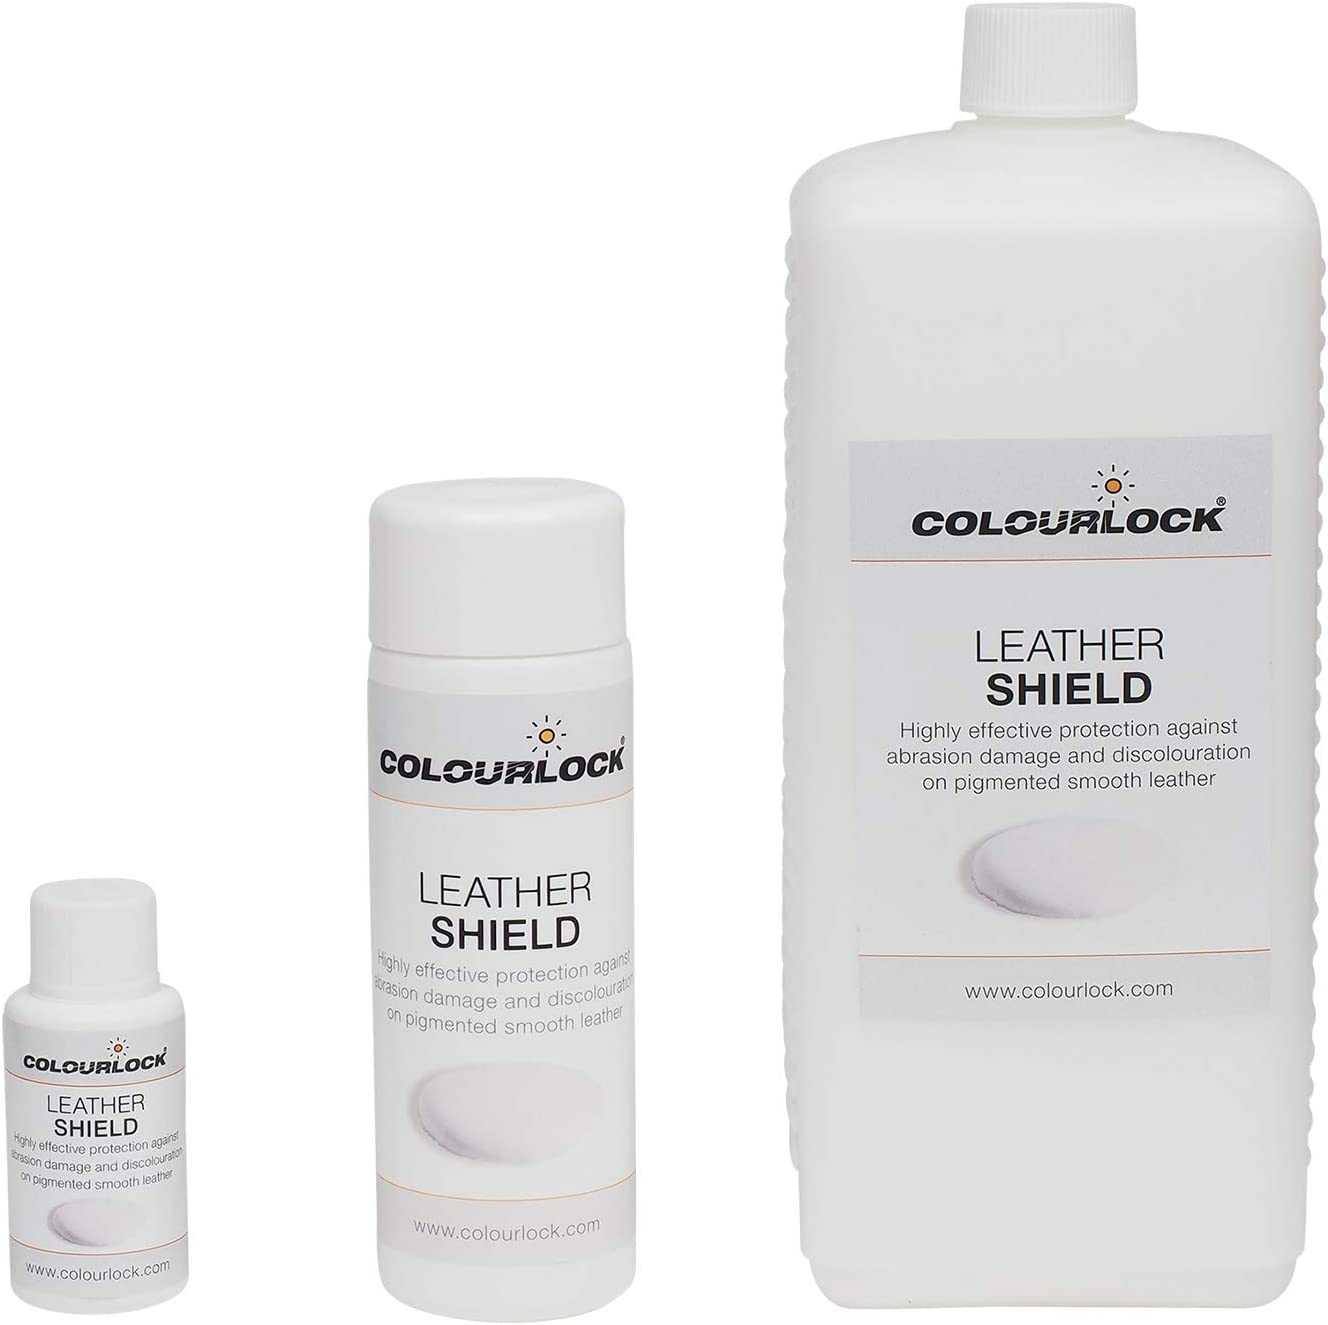 COLOURLOCK Leather Shield for New Leathers & Protection from Ink & dye transfers on Leather (1 Litre)